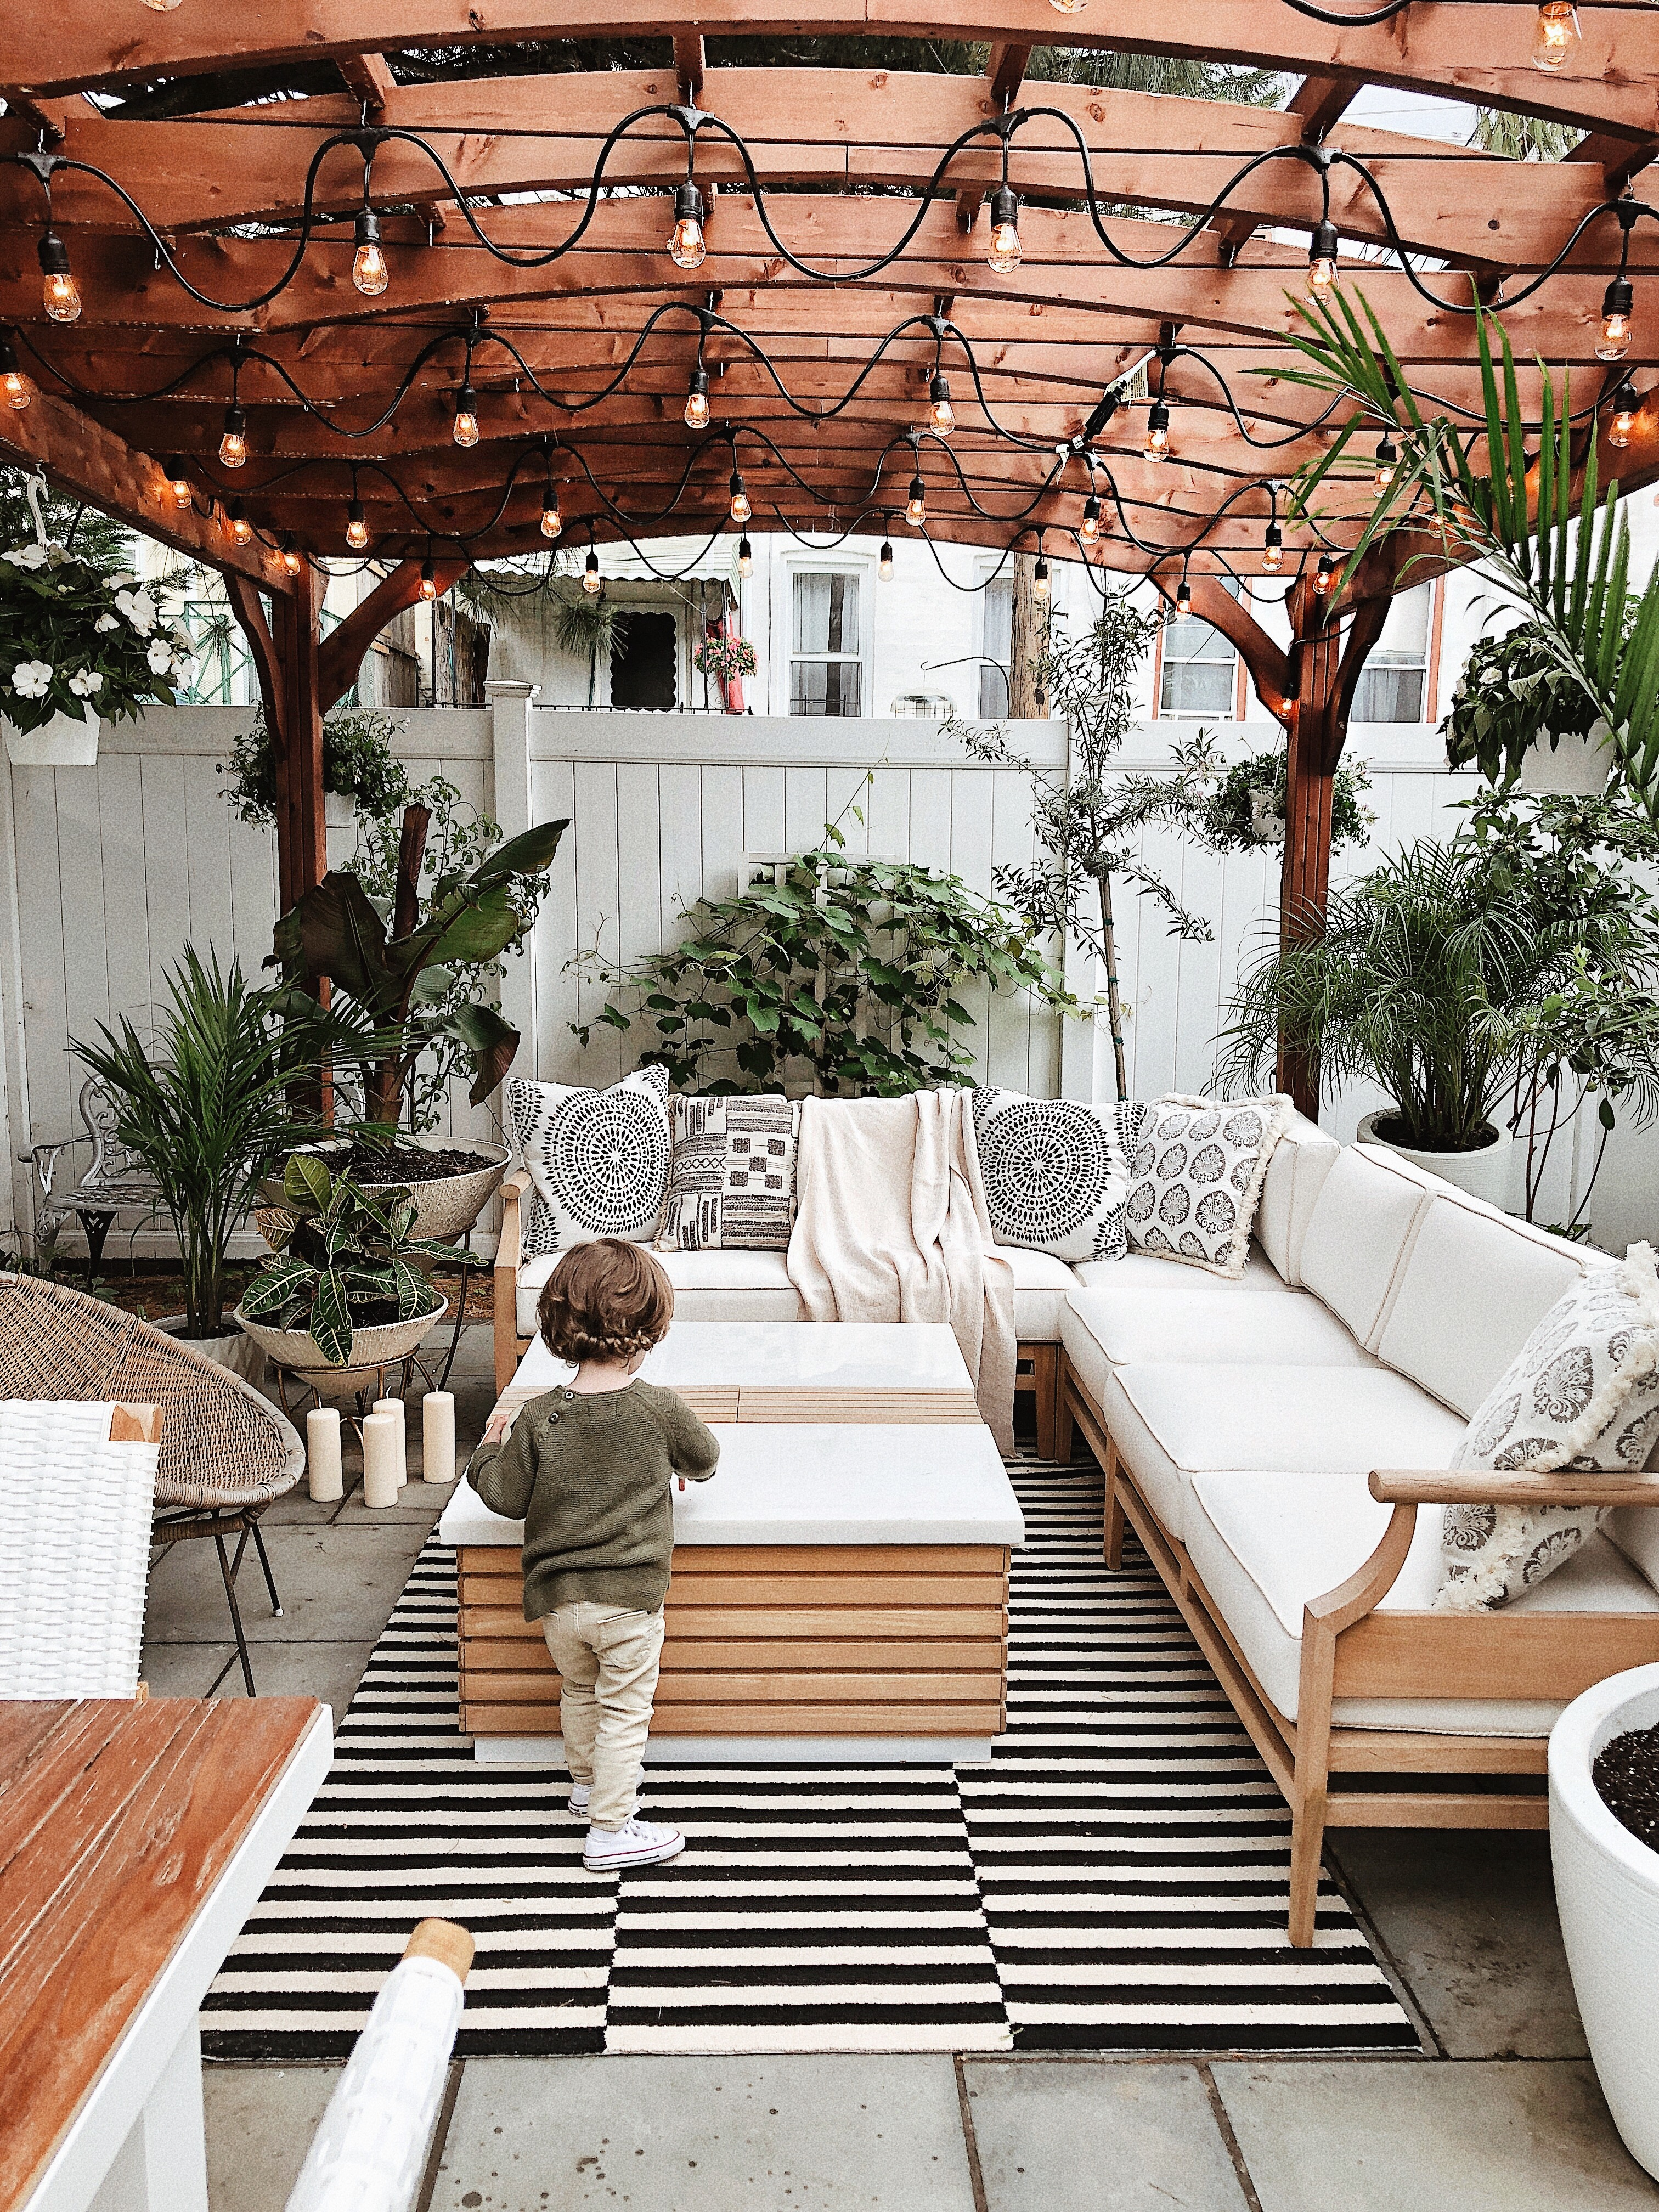 Urban backyard, backyard inspiration, Brooklyn backyard, backyard with pergola.